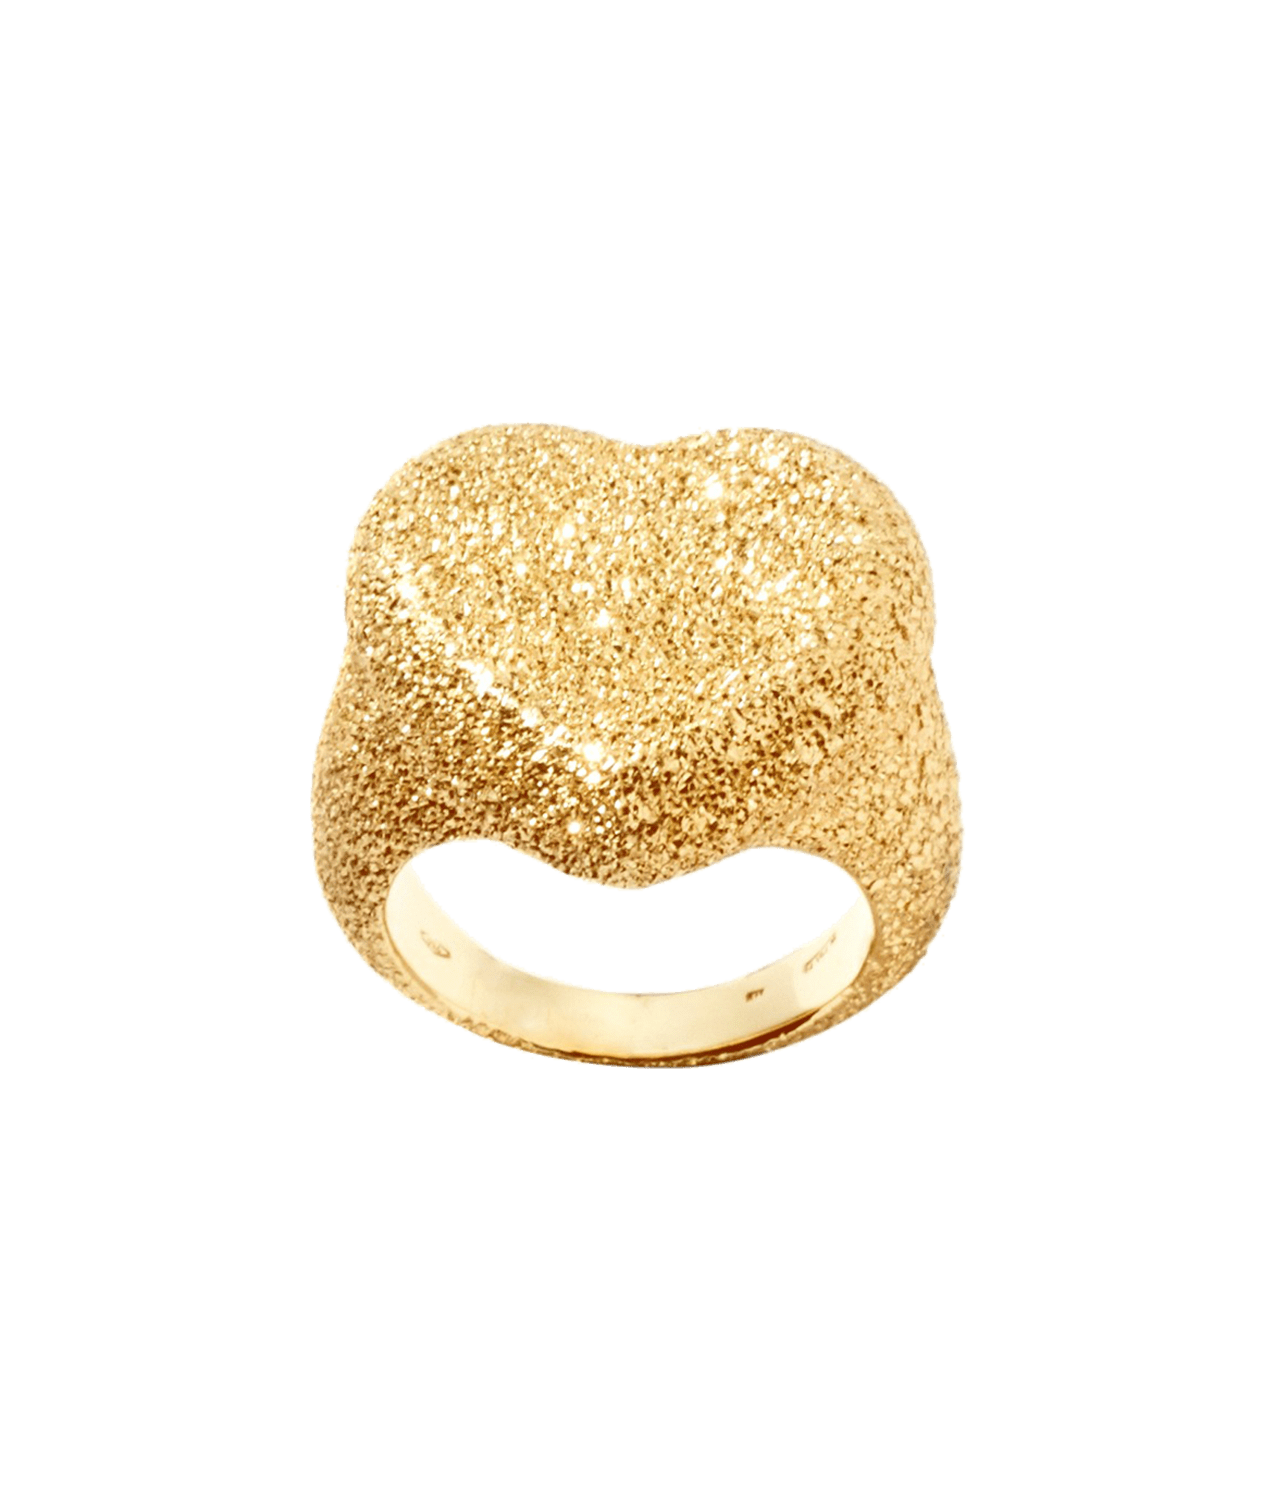 Carolina Bucci Cuore Heart Ring Florentine Finish Yellow Gold